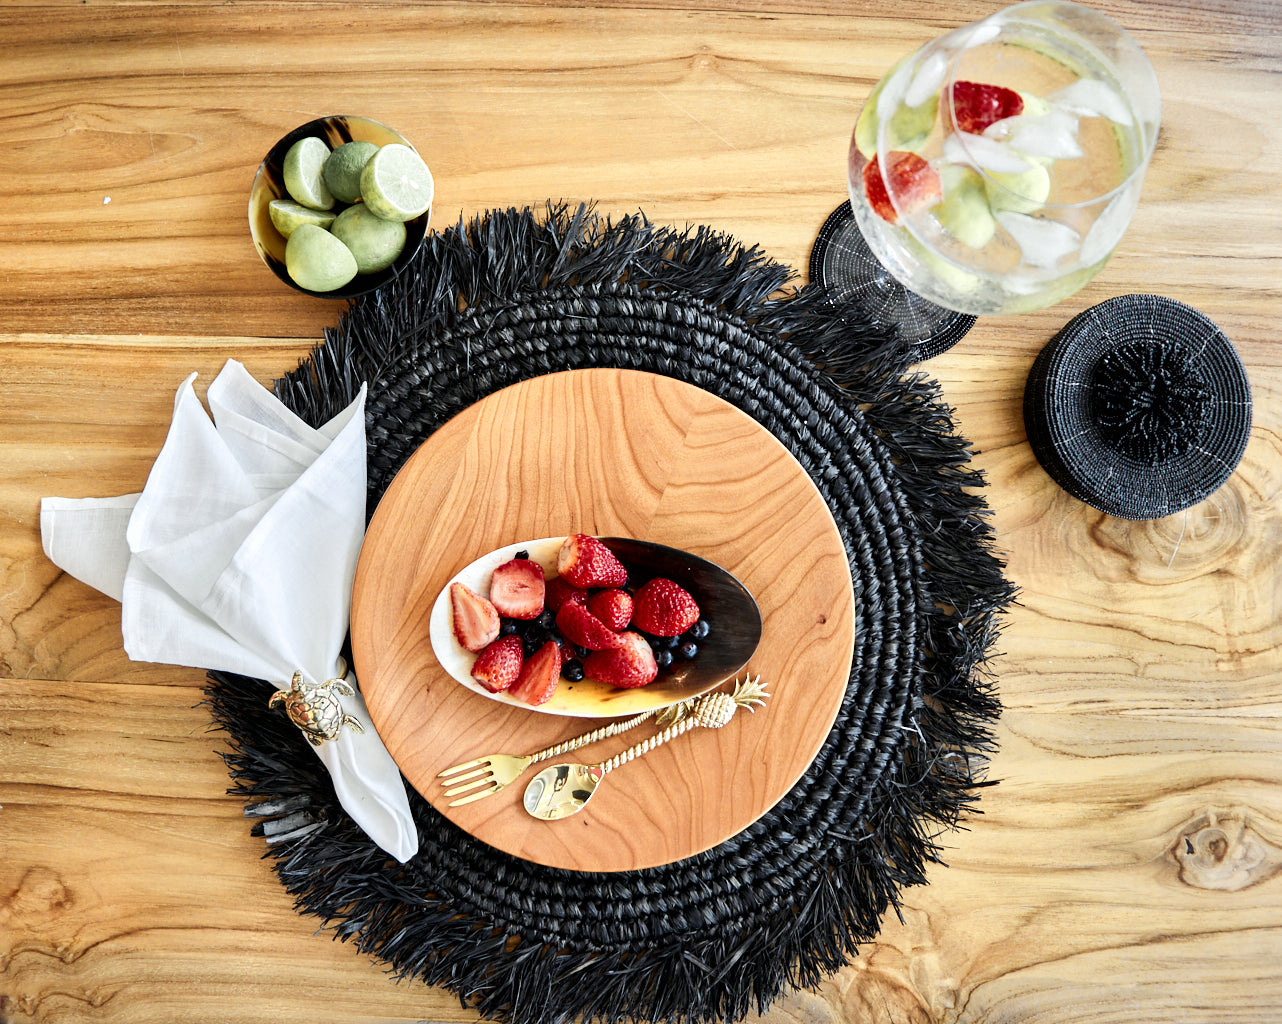 PLACEMAT BARLOVENTO BLACK